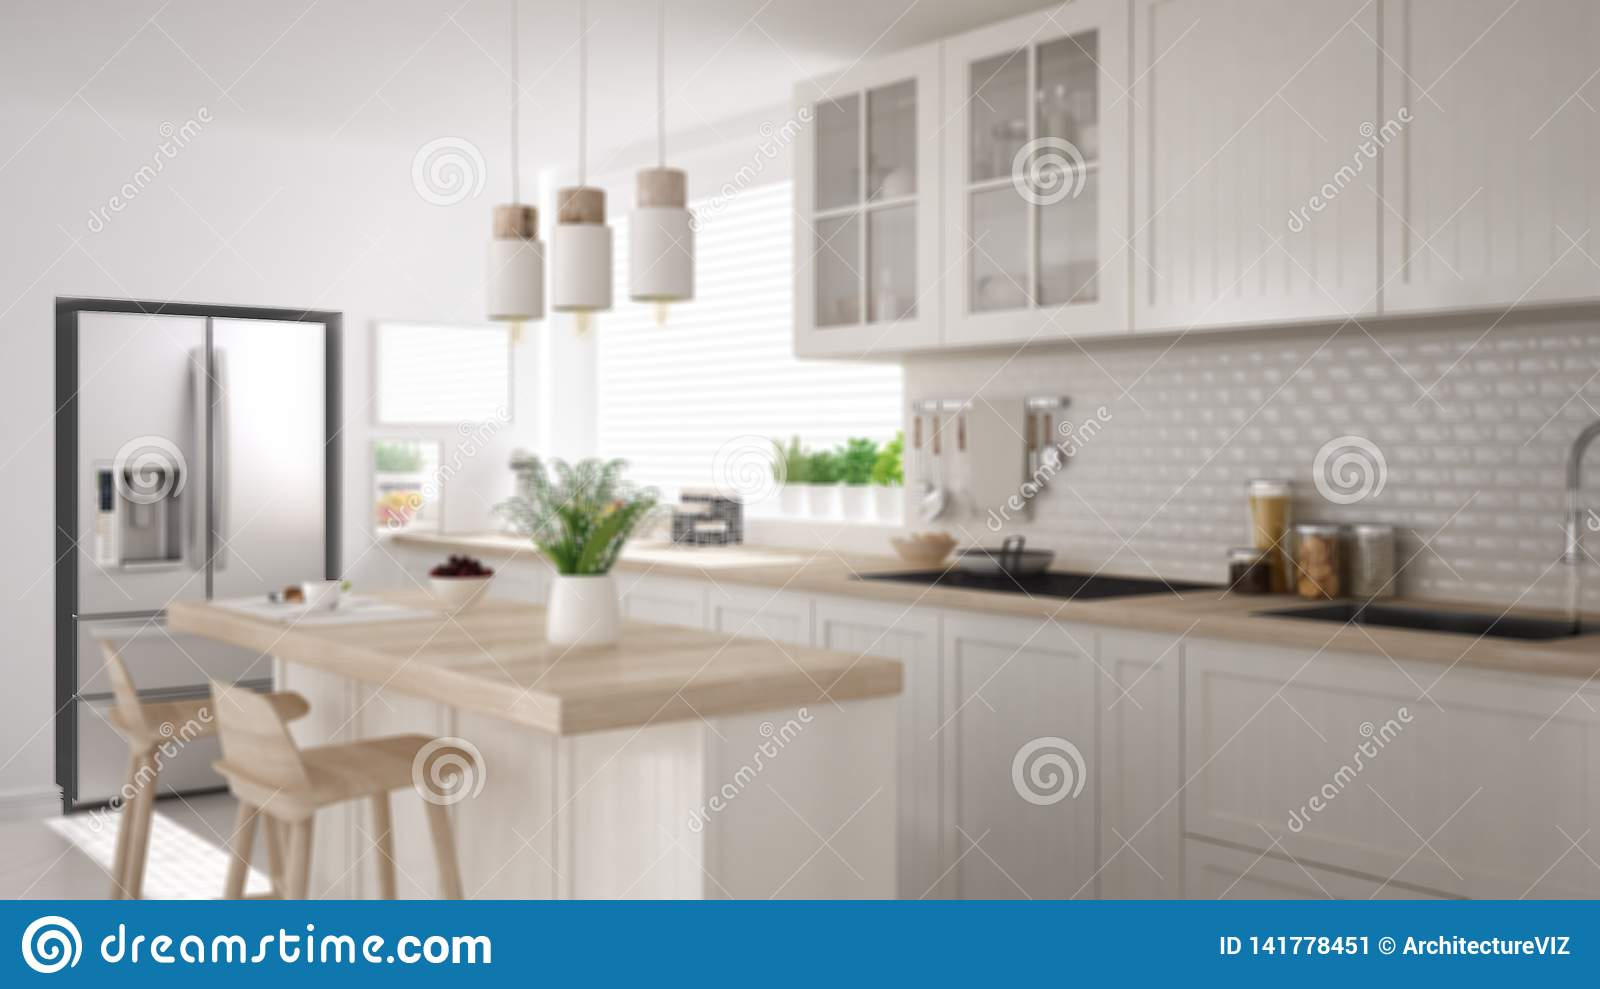 Blur Background Interior Design Modern Scandinavian Kitchen With Island Stools And Pendant Lamps Cabinets And Accessories Stock Illustration Illustration Of White Modern 141778451